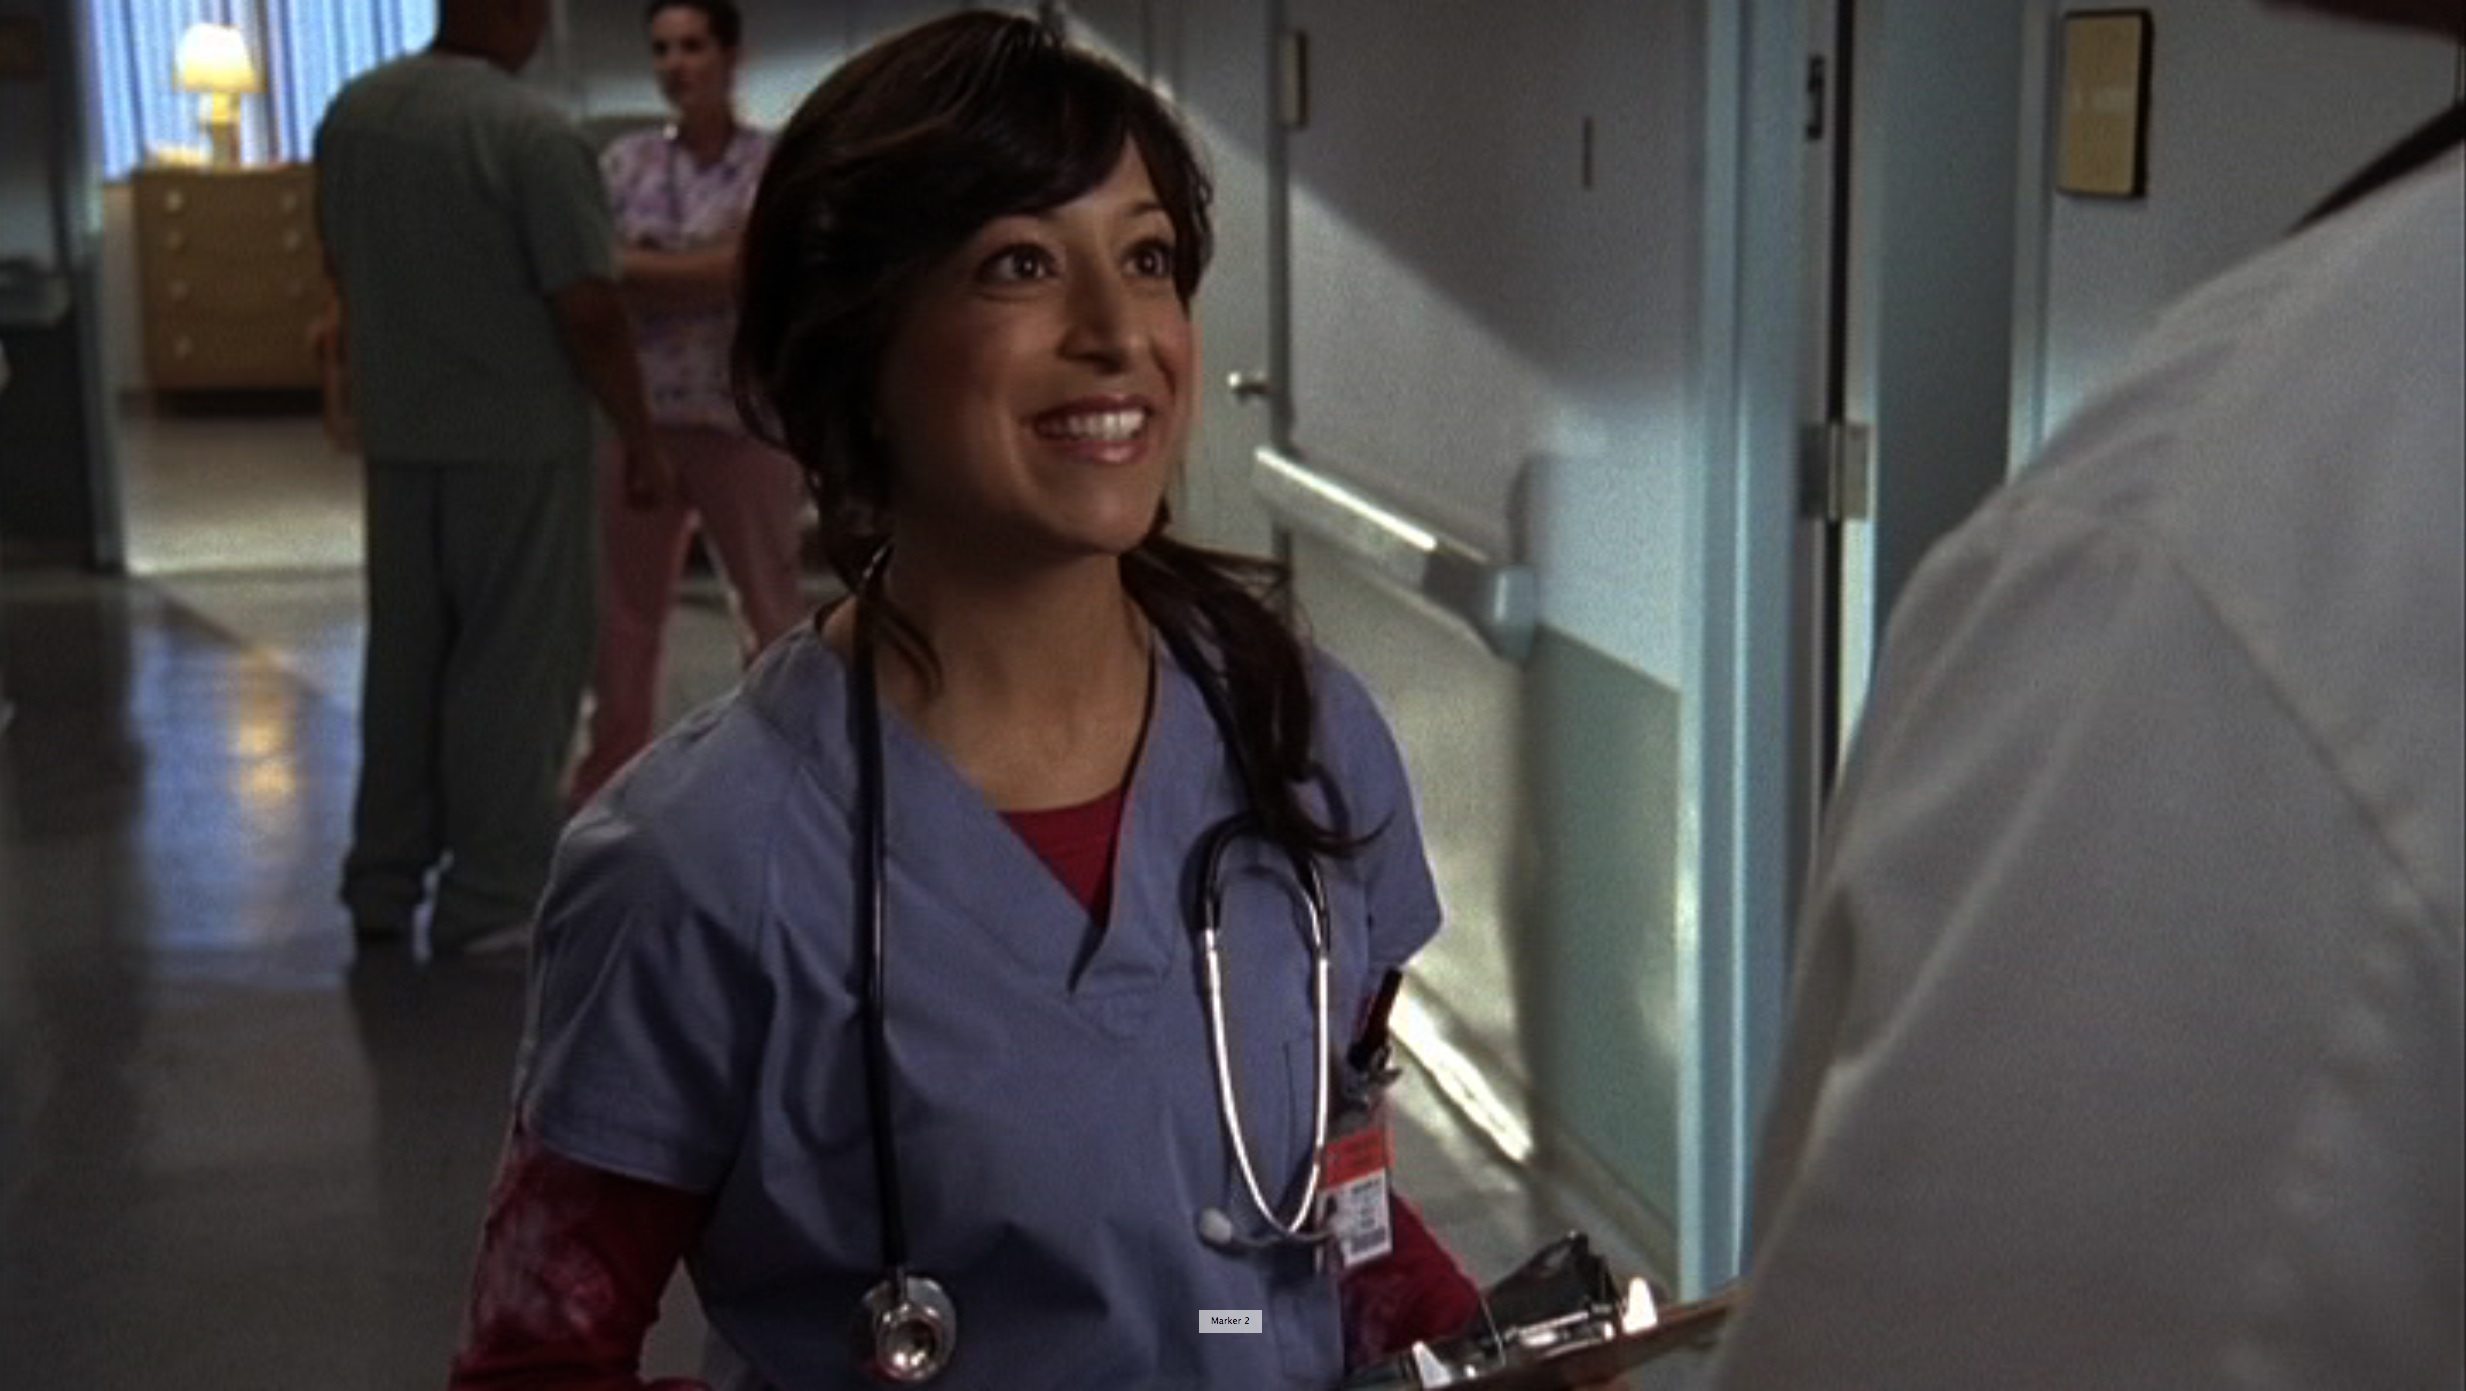 Sonal Shah on the set of ABC's Scrubs